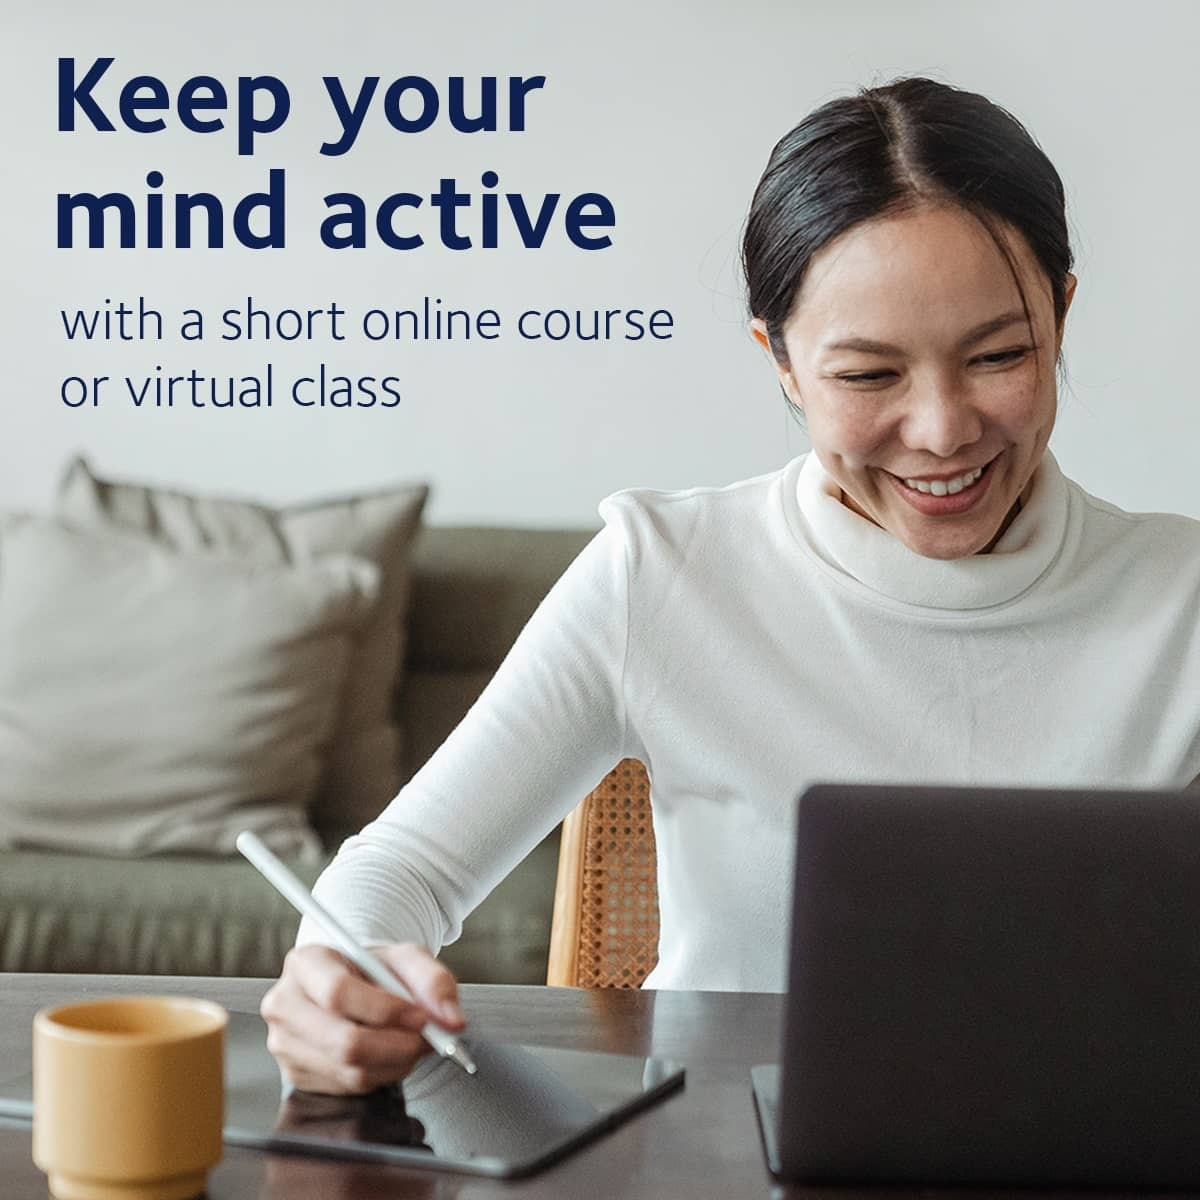 Keep your mind active - with a short online course or virtual class